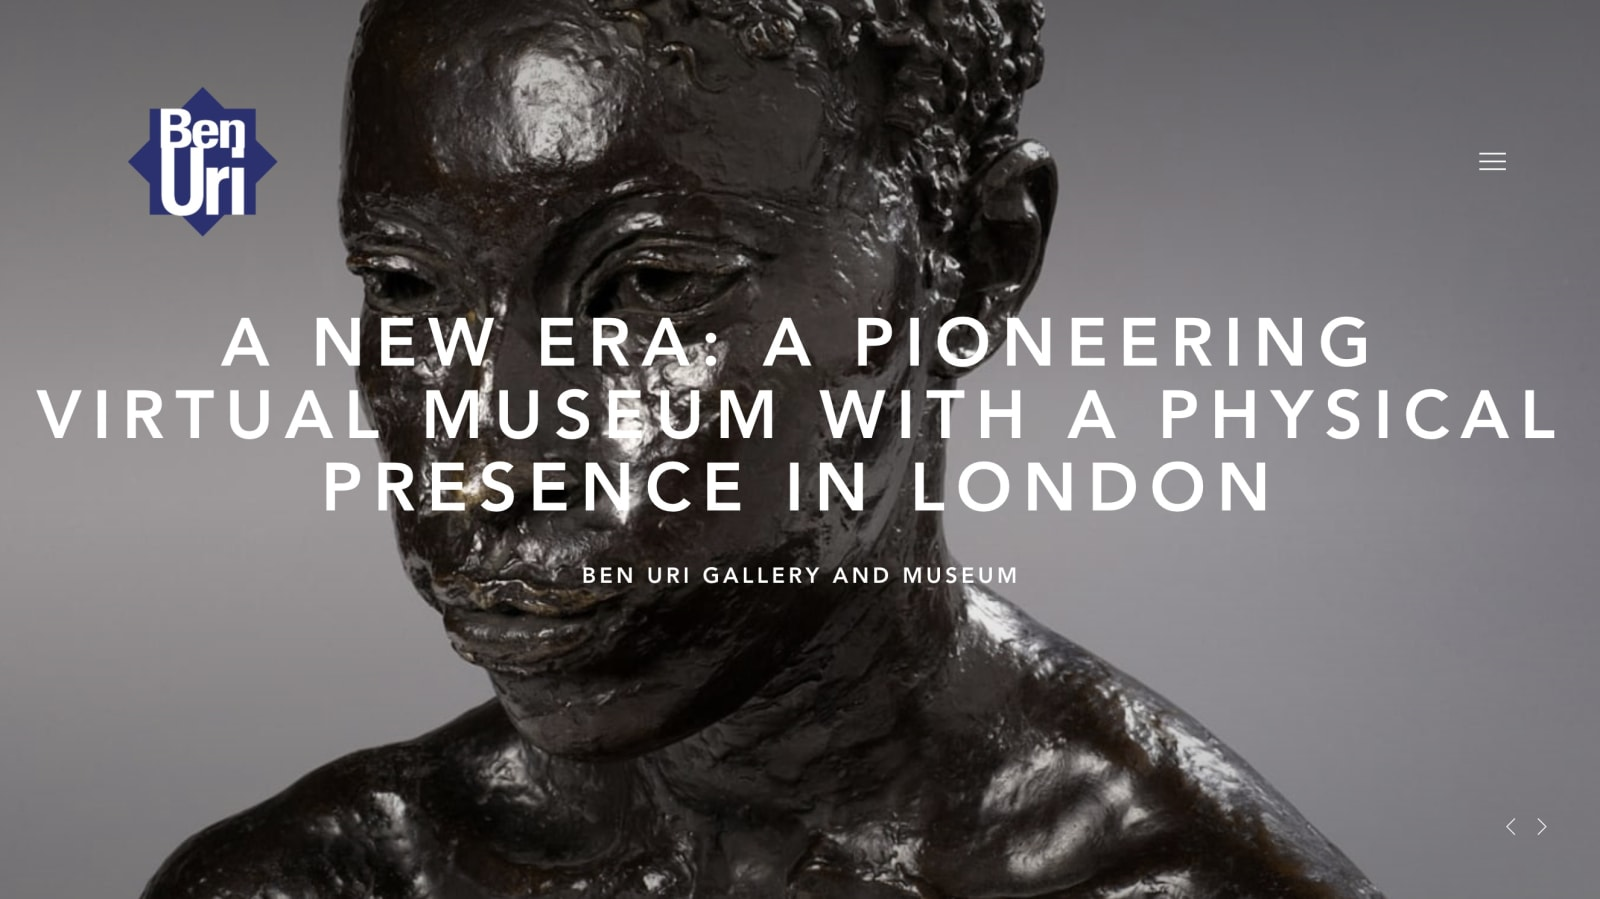 Looking to the future What comes next for Ben Uri? Listen to find out. Part of the audio guide produced for Ben Uri gallery 2015 Centenary Exhibition at Somerset House, London. Listen